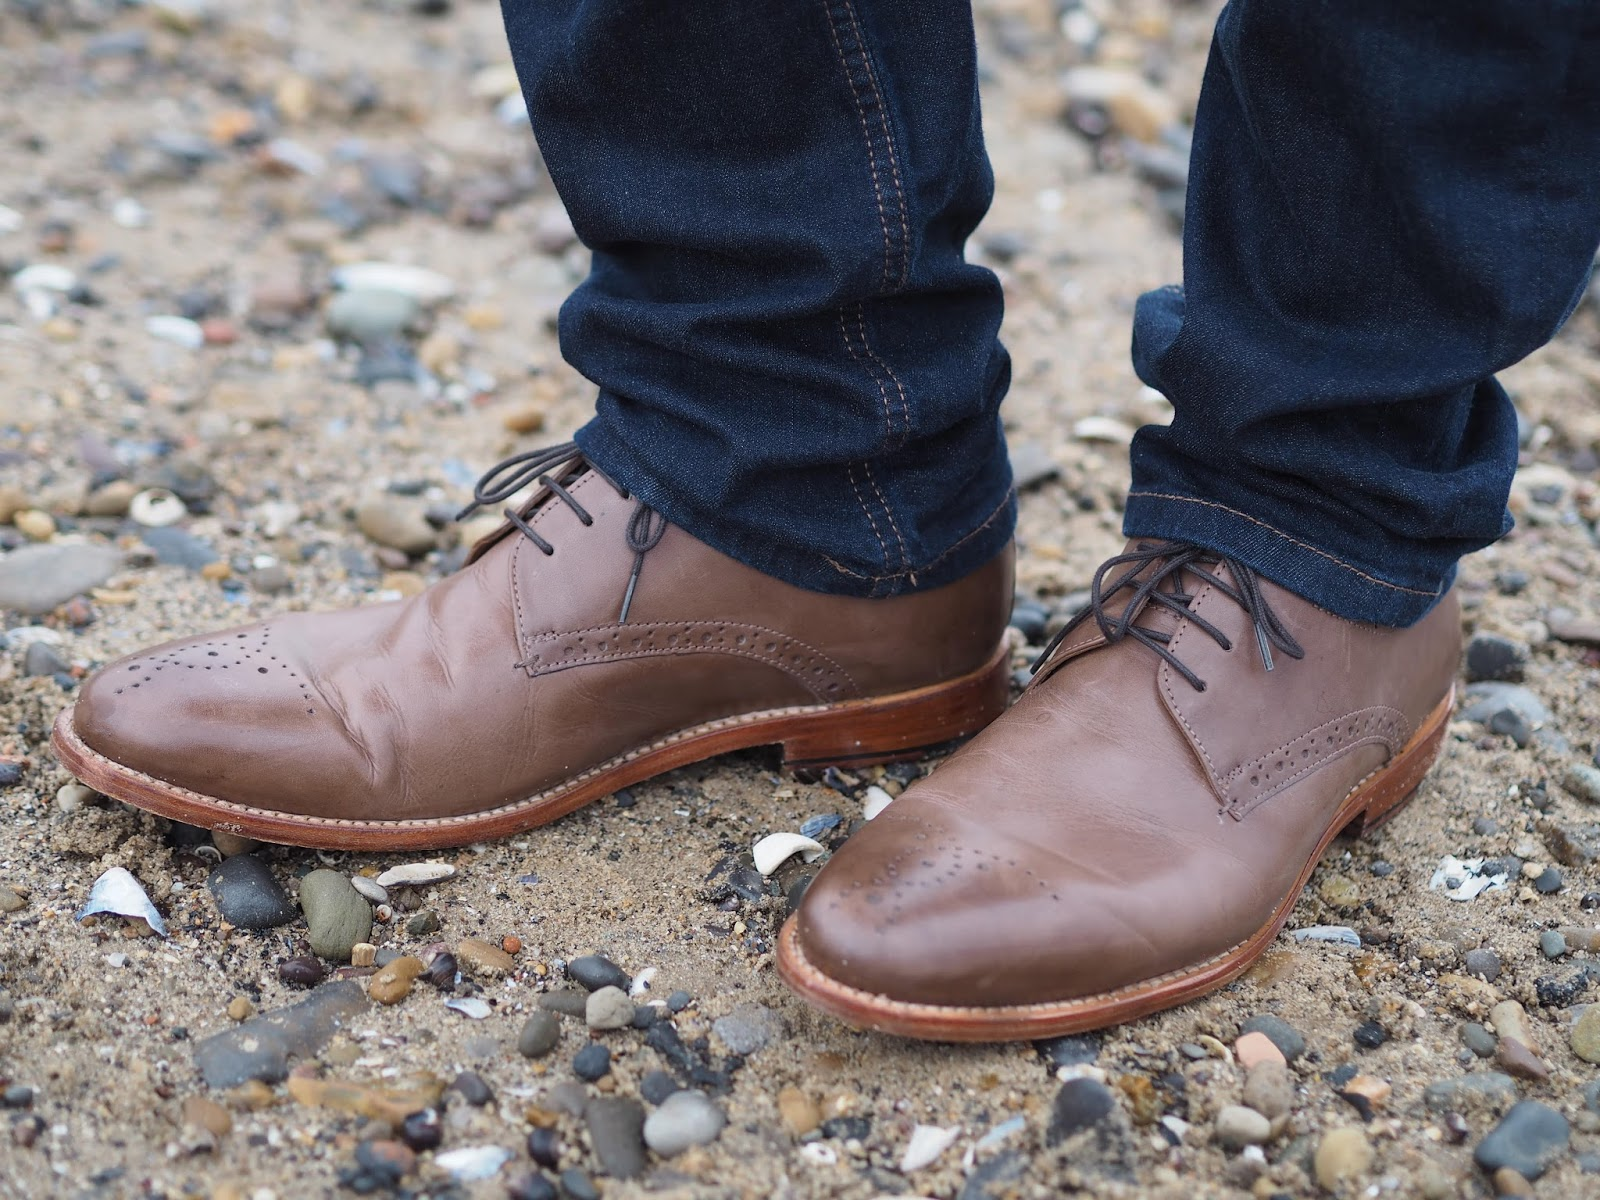 men's brown leather brogues from Lotus shoes